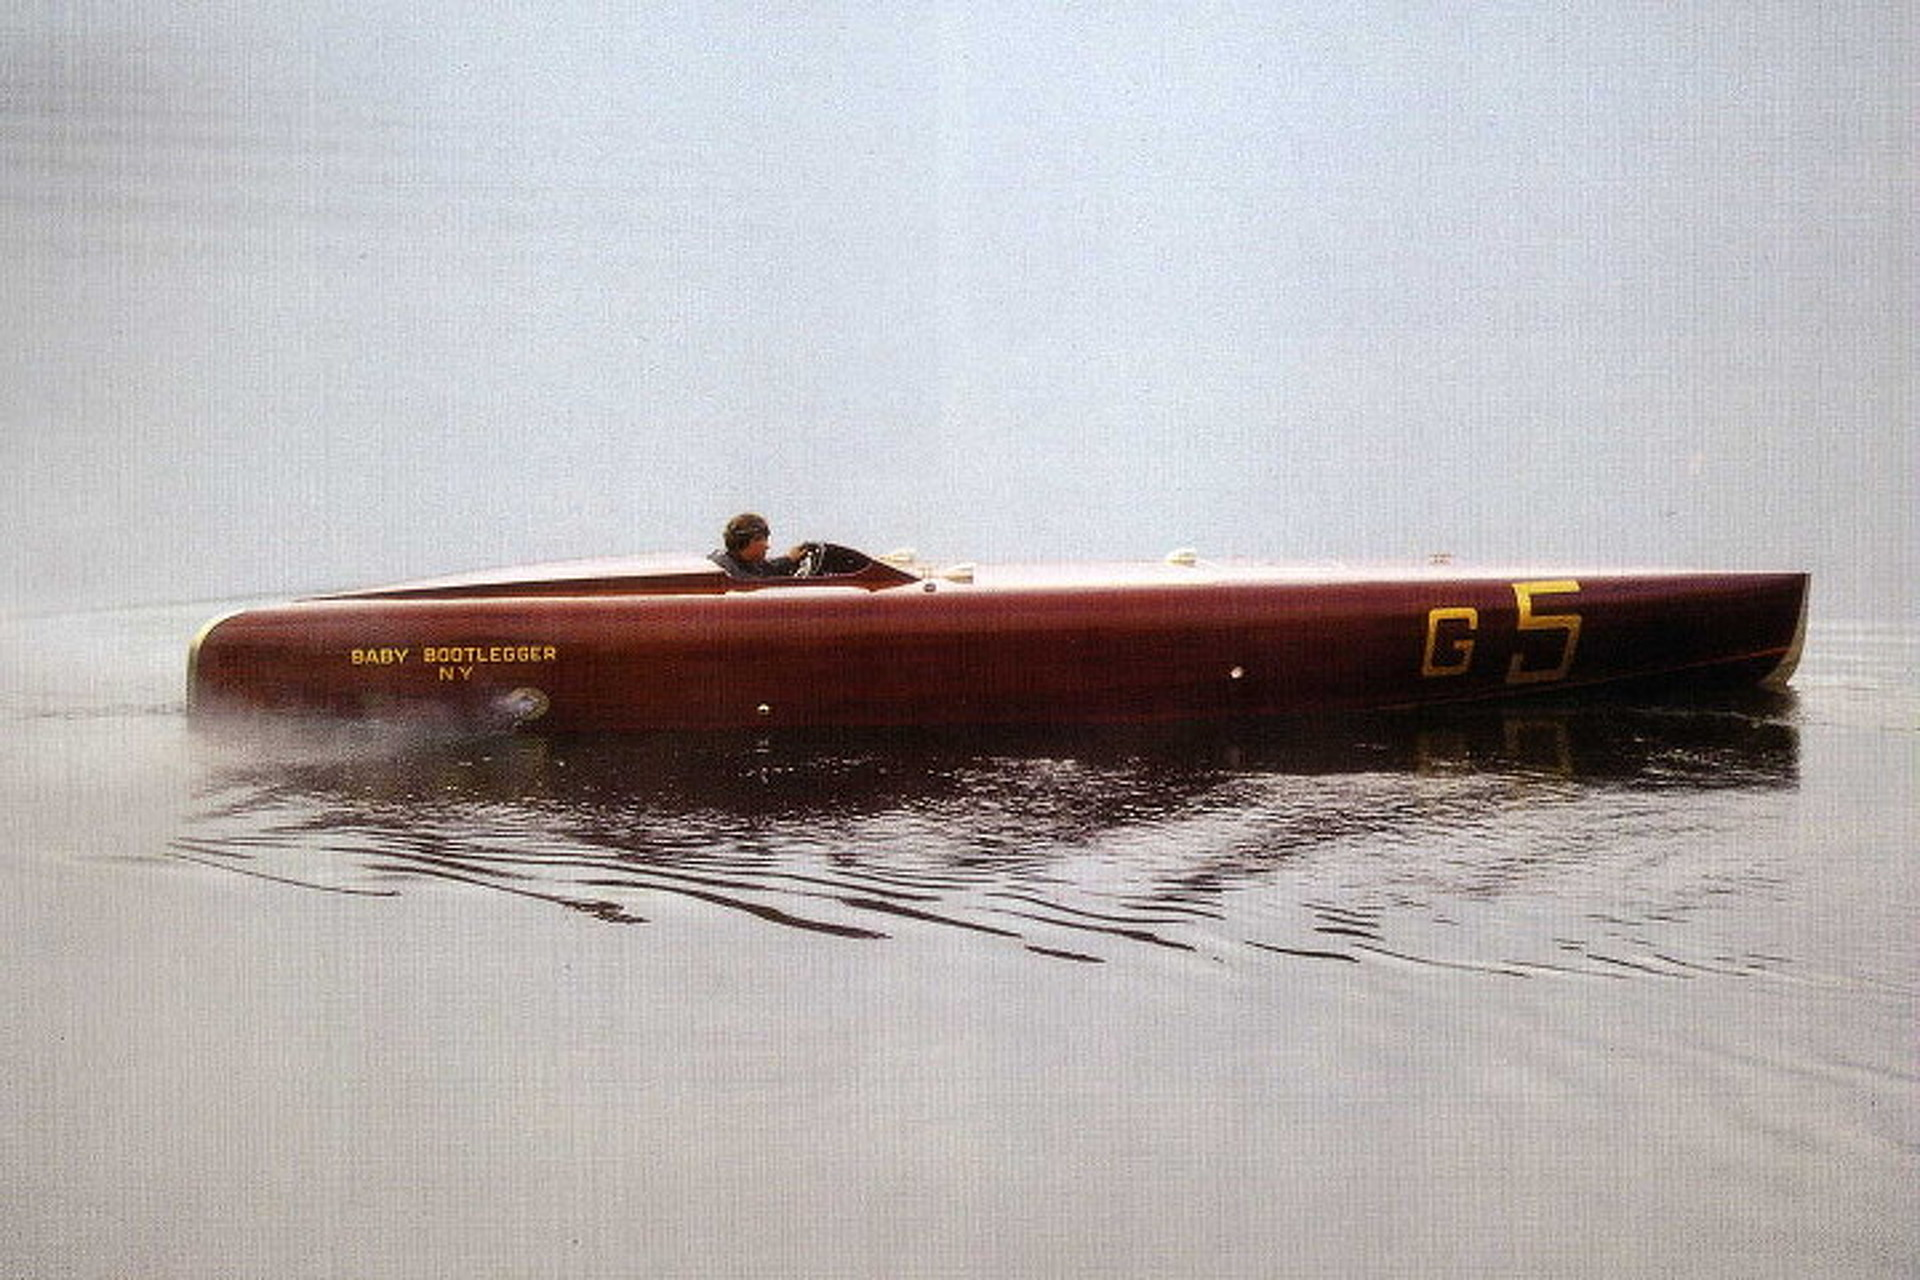 The Baby Bootlegger is a Vintage Speed Boat of Epic Proportions